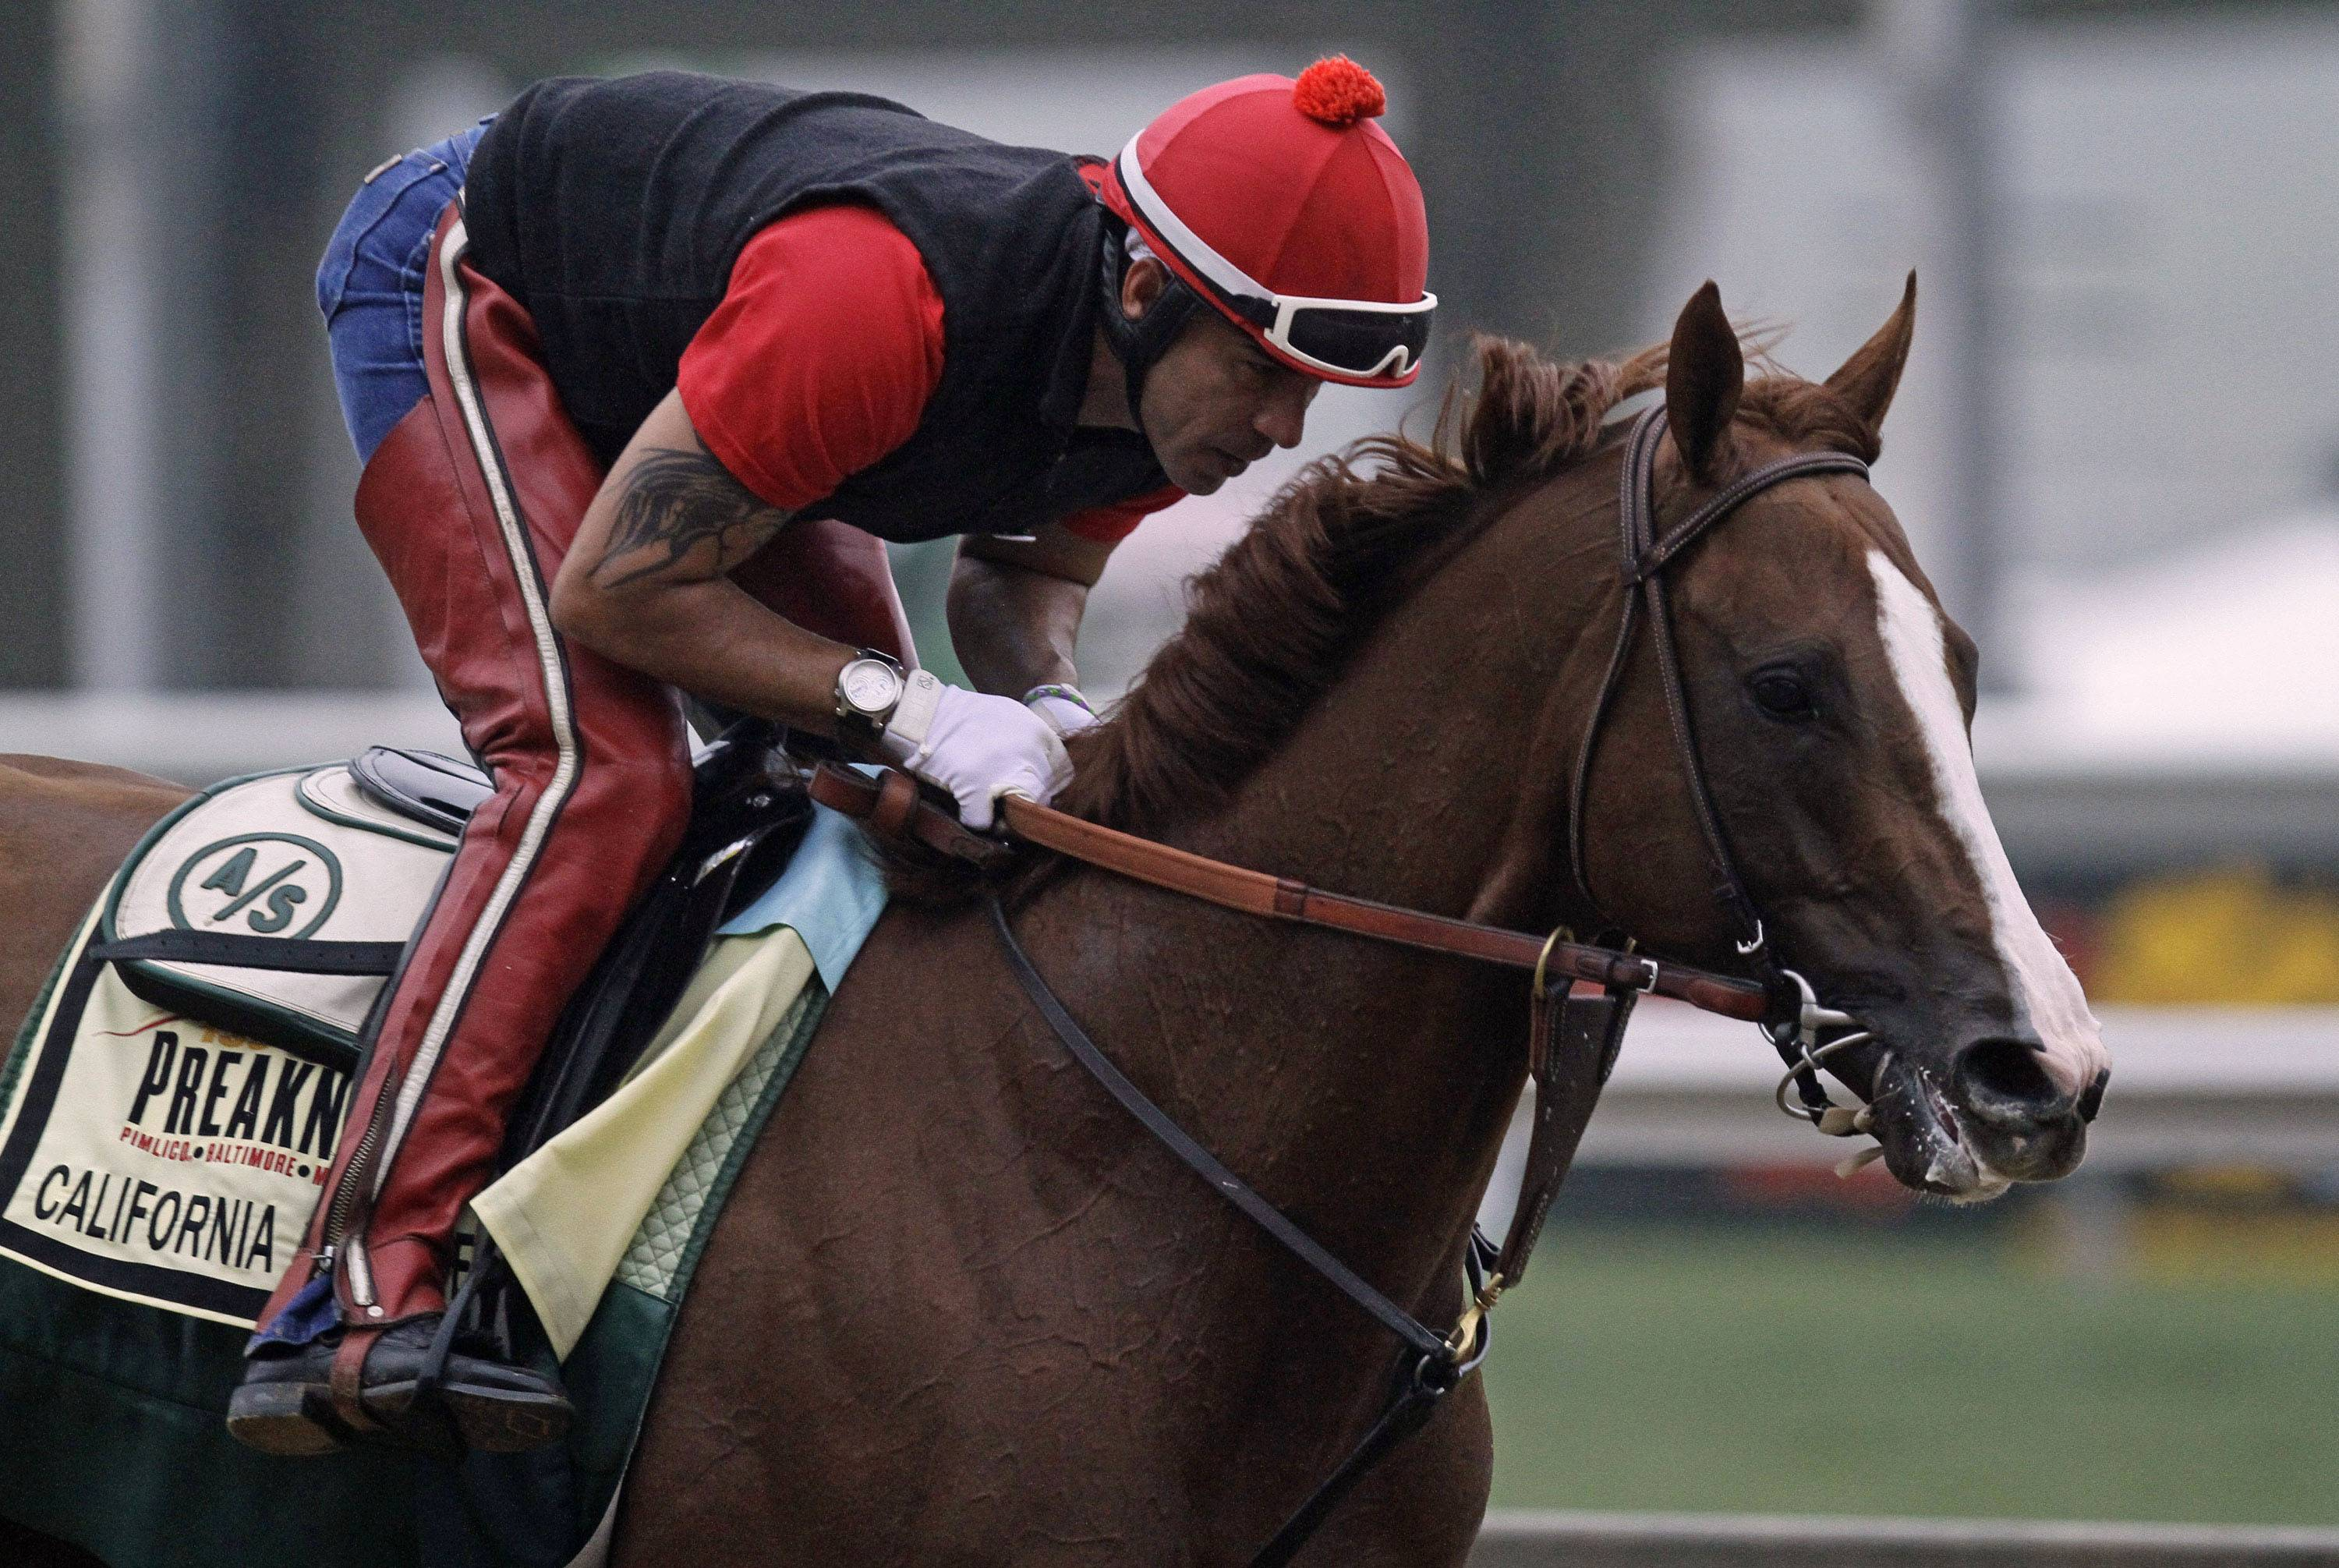 Exercise rider Willie Delgado gallops Kentucky Derby winner California Chrome at Pimlico Race Course in Baltimore, Md., Wednesday, May 14, 2014. The Preakness Stakes horse race is scheduled for May 17 at Pimlico.